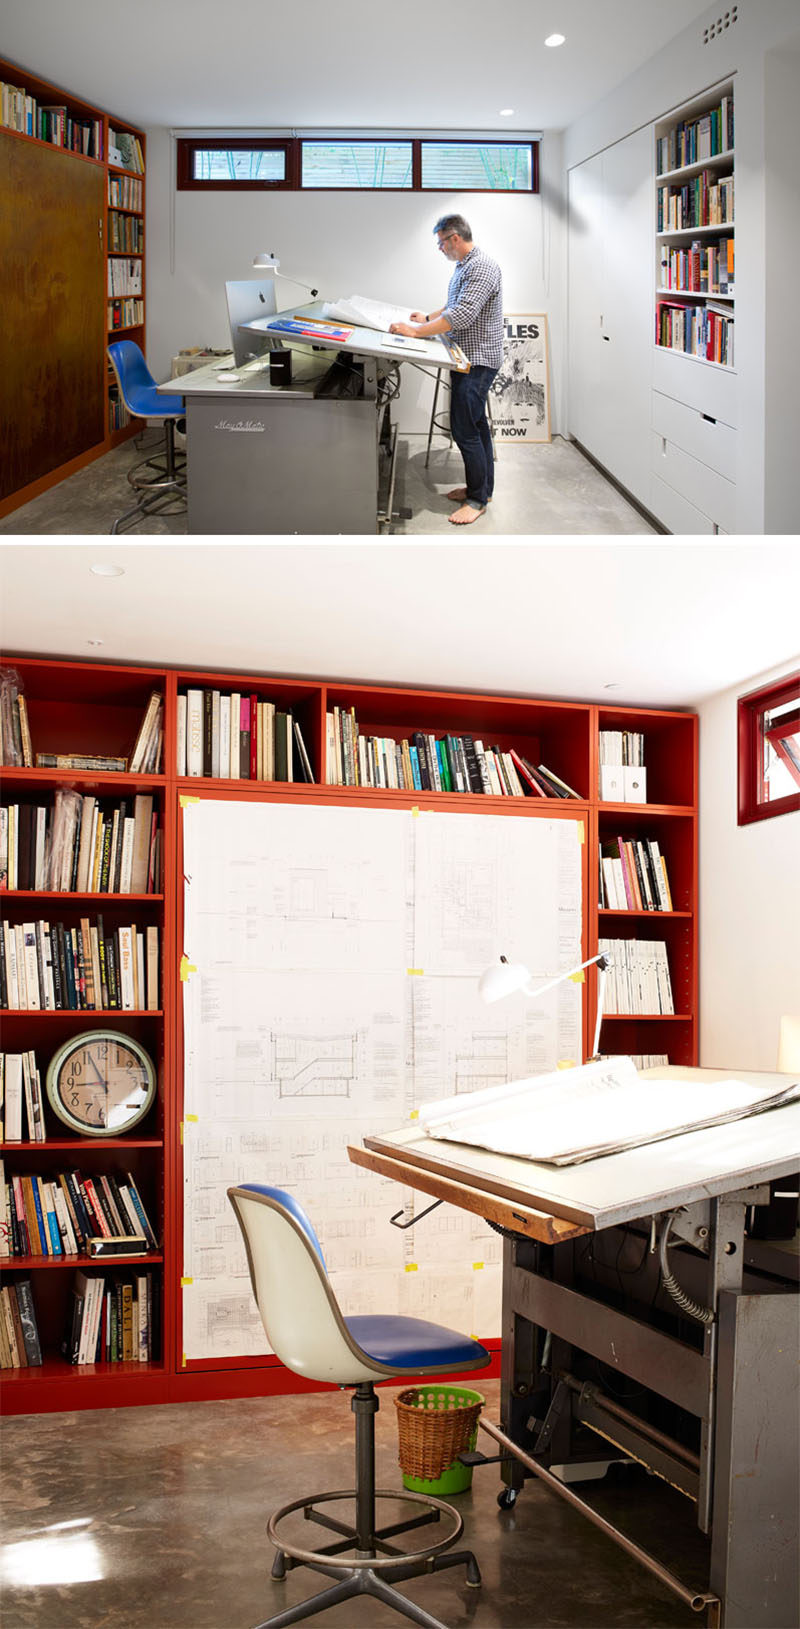 This home office has a wall of cabinets, and a small row of windows allows natural light to enter the room without the view through the windows creating a distraction.